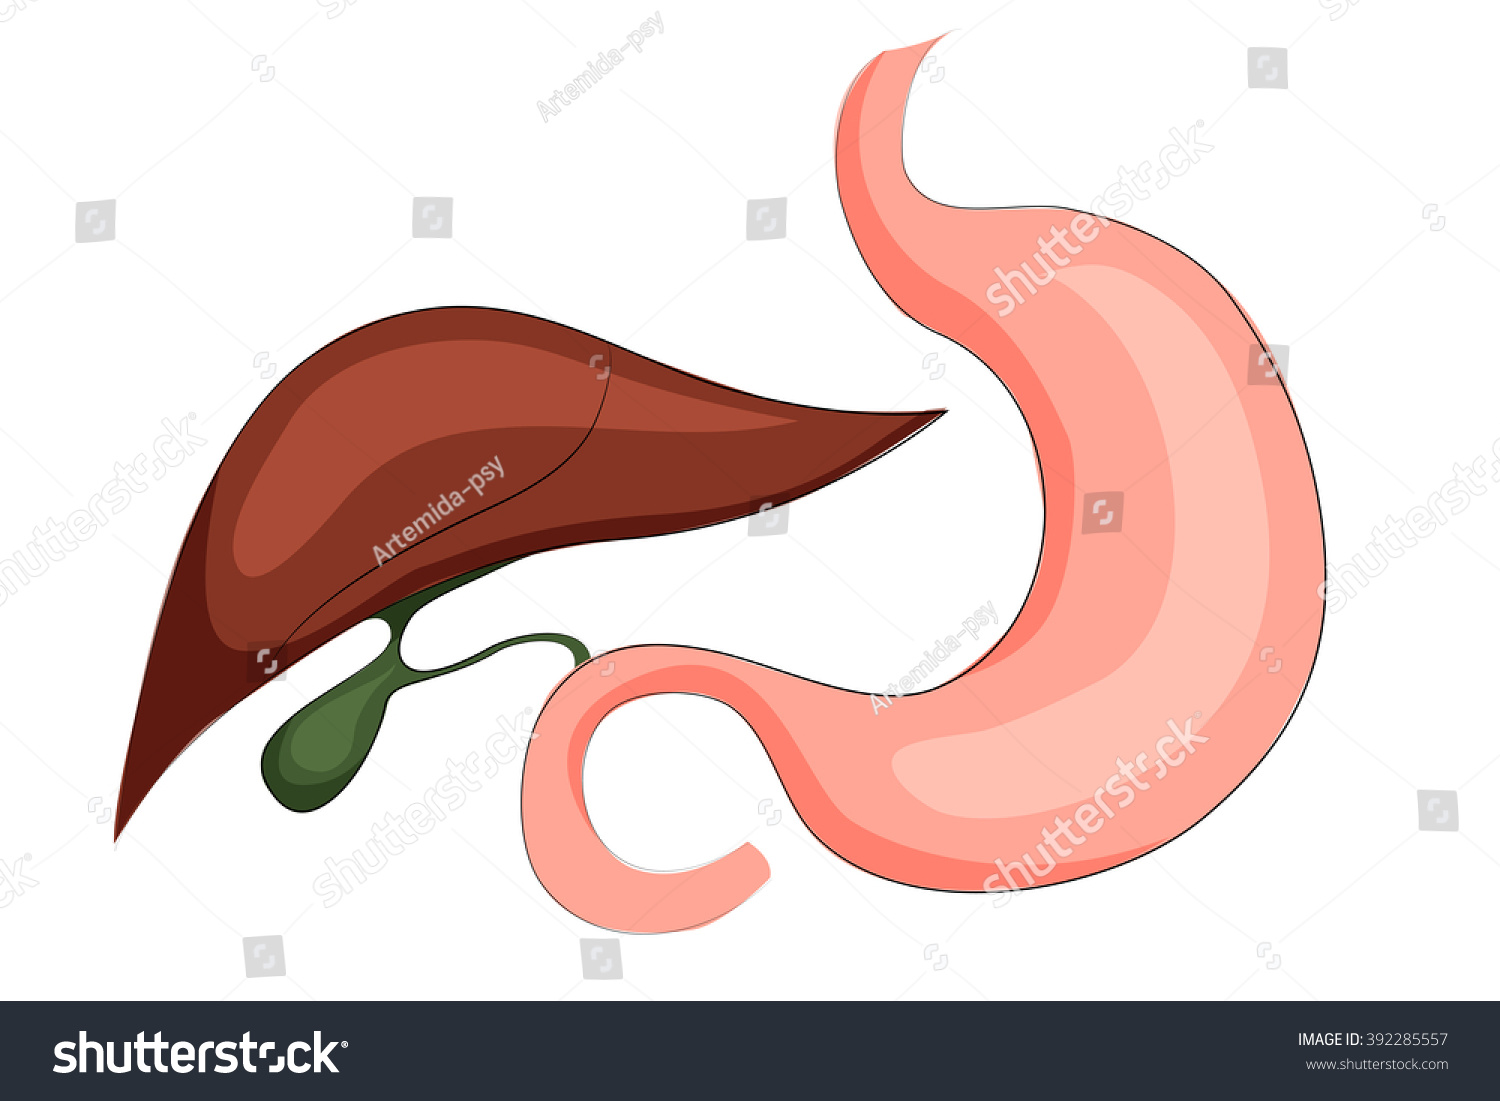 Illustration Of Stomach Liver And Gall Bladder  Digestive